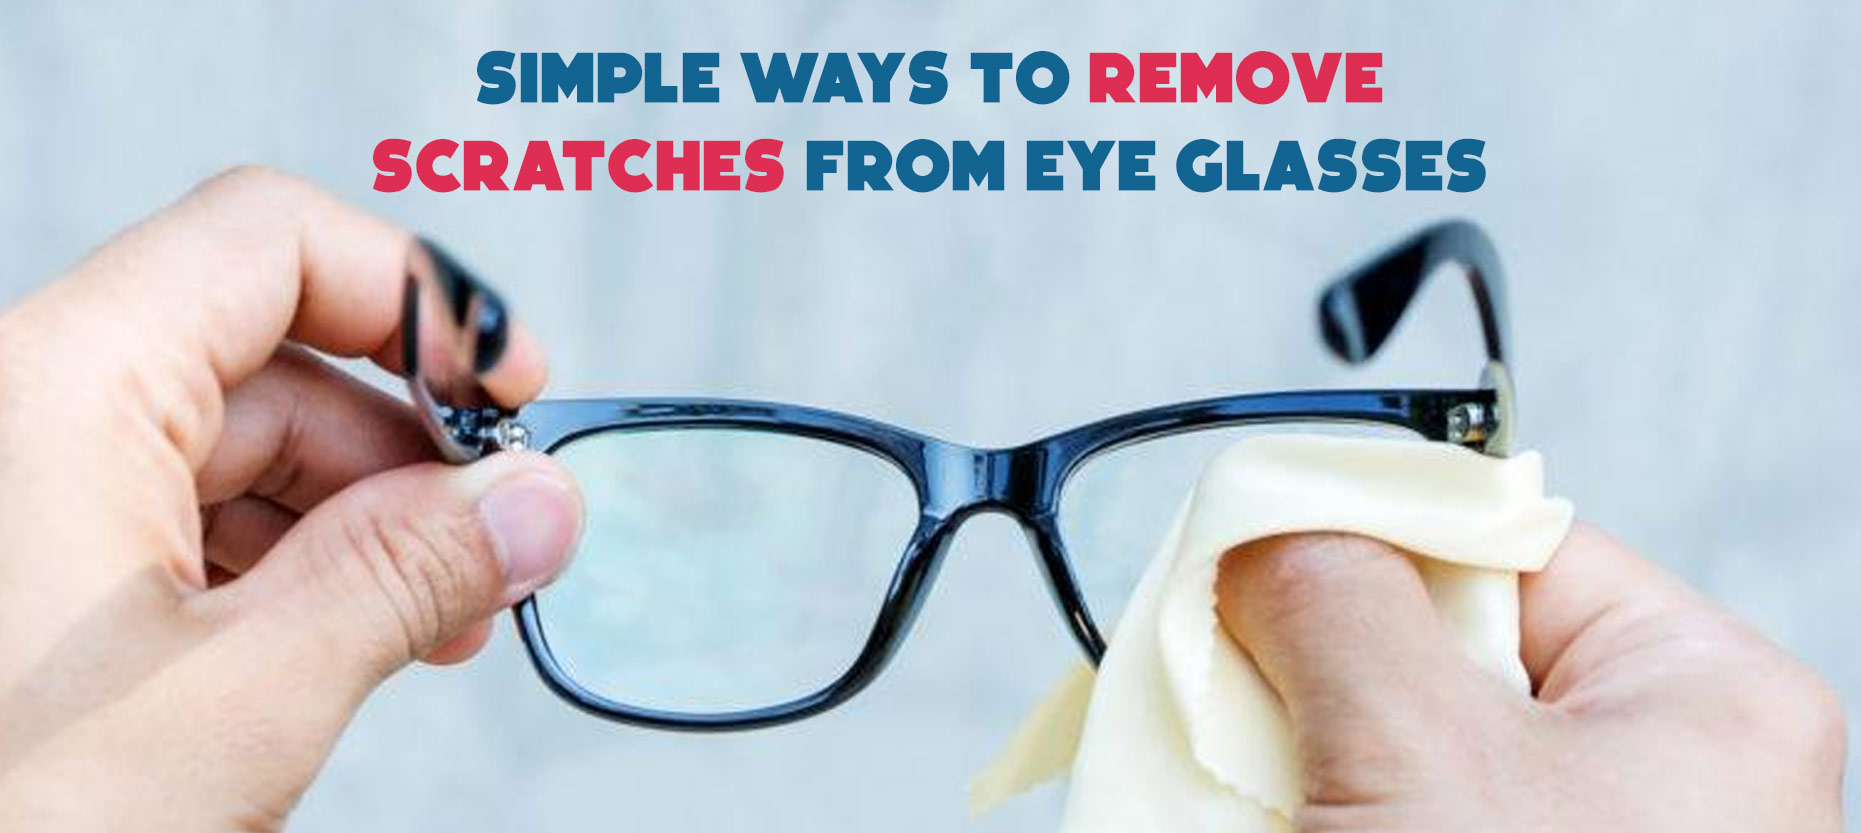 How to Remove Scratches from Spectacles